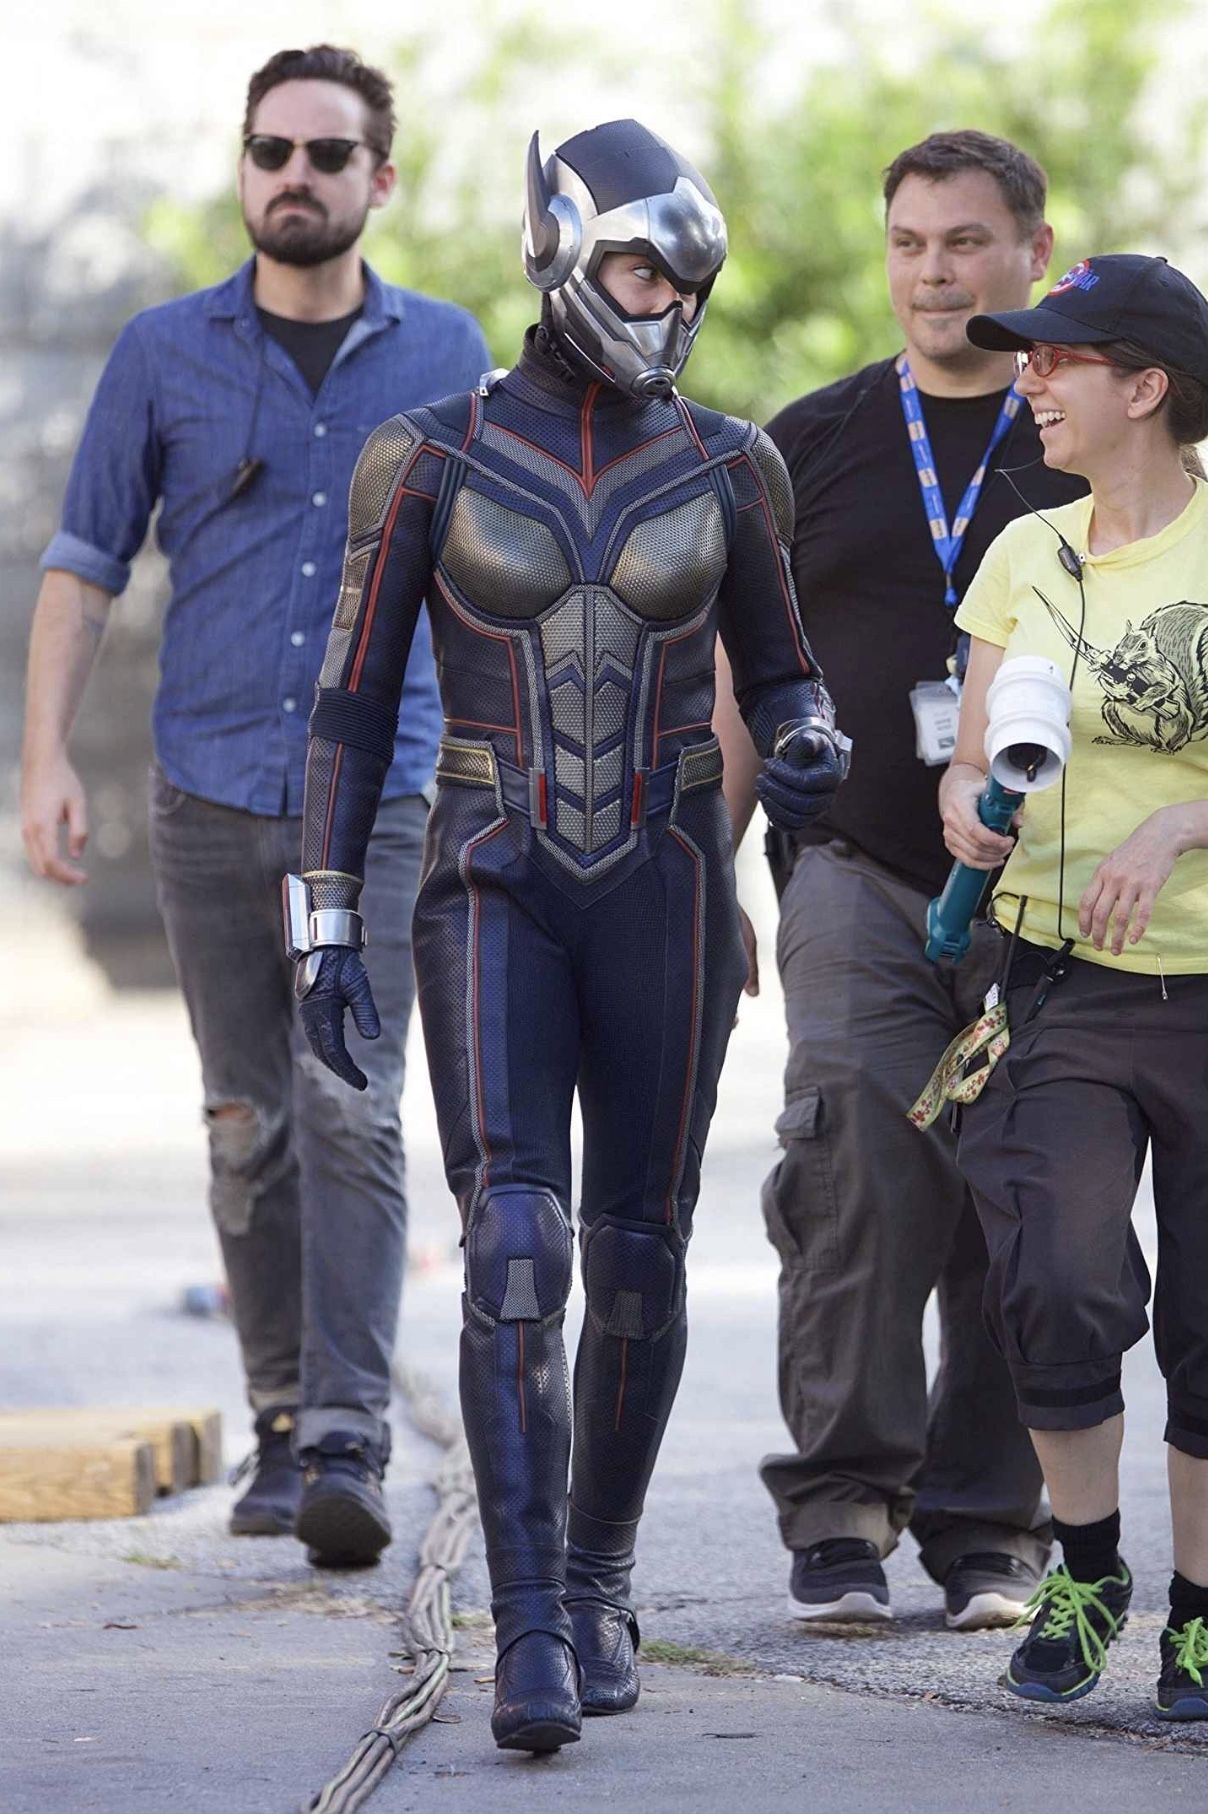 Behind The Scenes Evangeline Lilly Wasp Comic Book Heroes Marvel